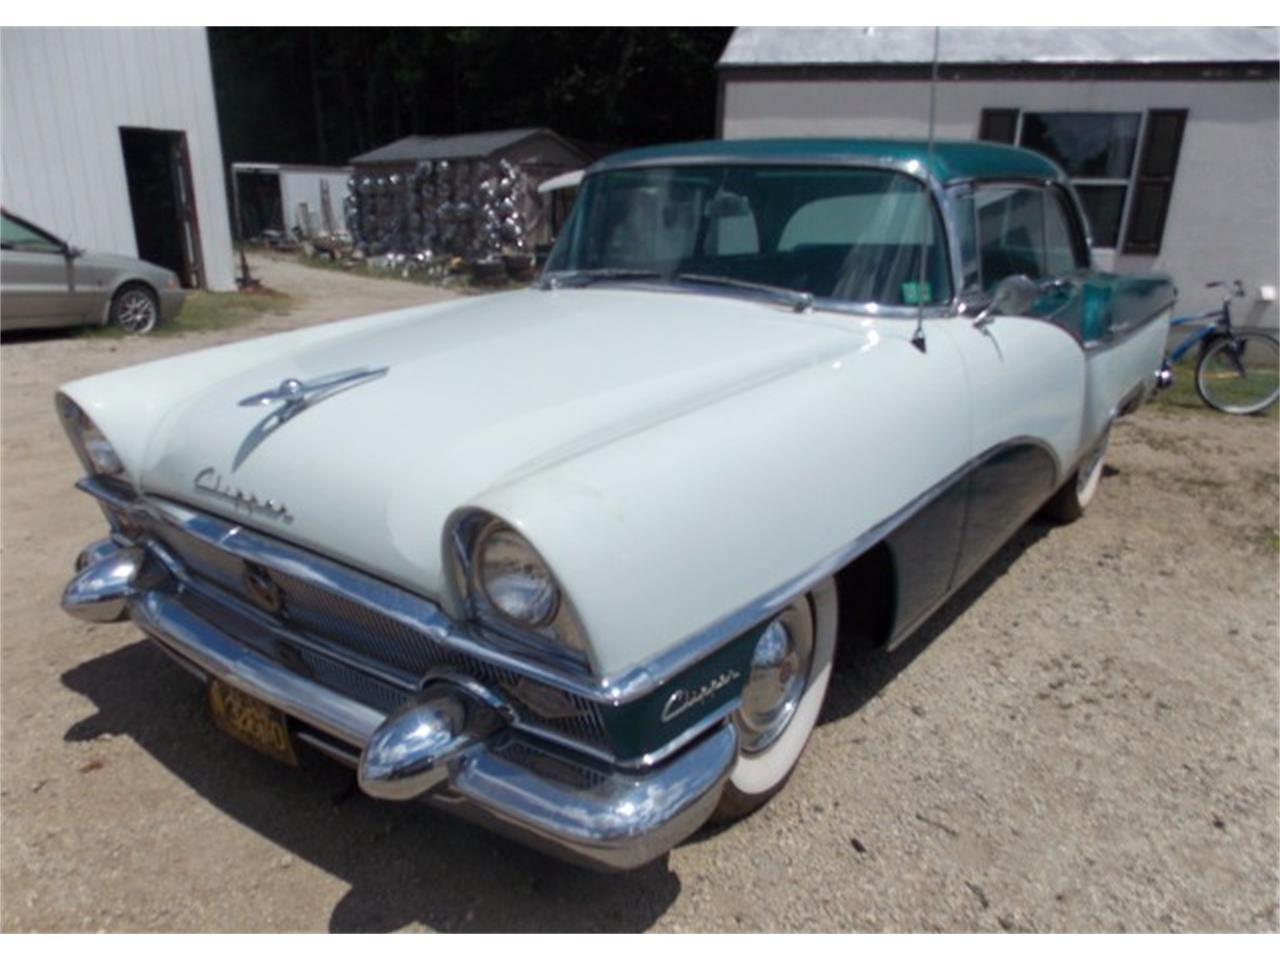 Large Picture of Classic '55 Packard Clipper located in South Carolina - $12,500.00 Offered by Classic Cars of South Carolina - LHA8